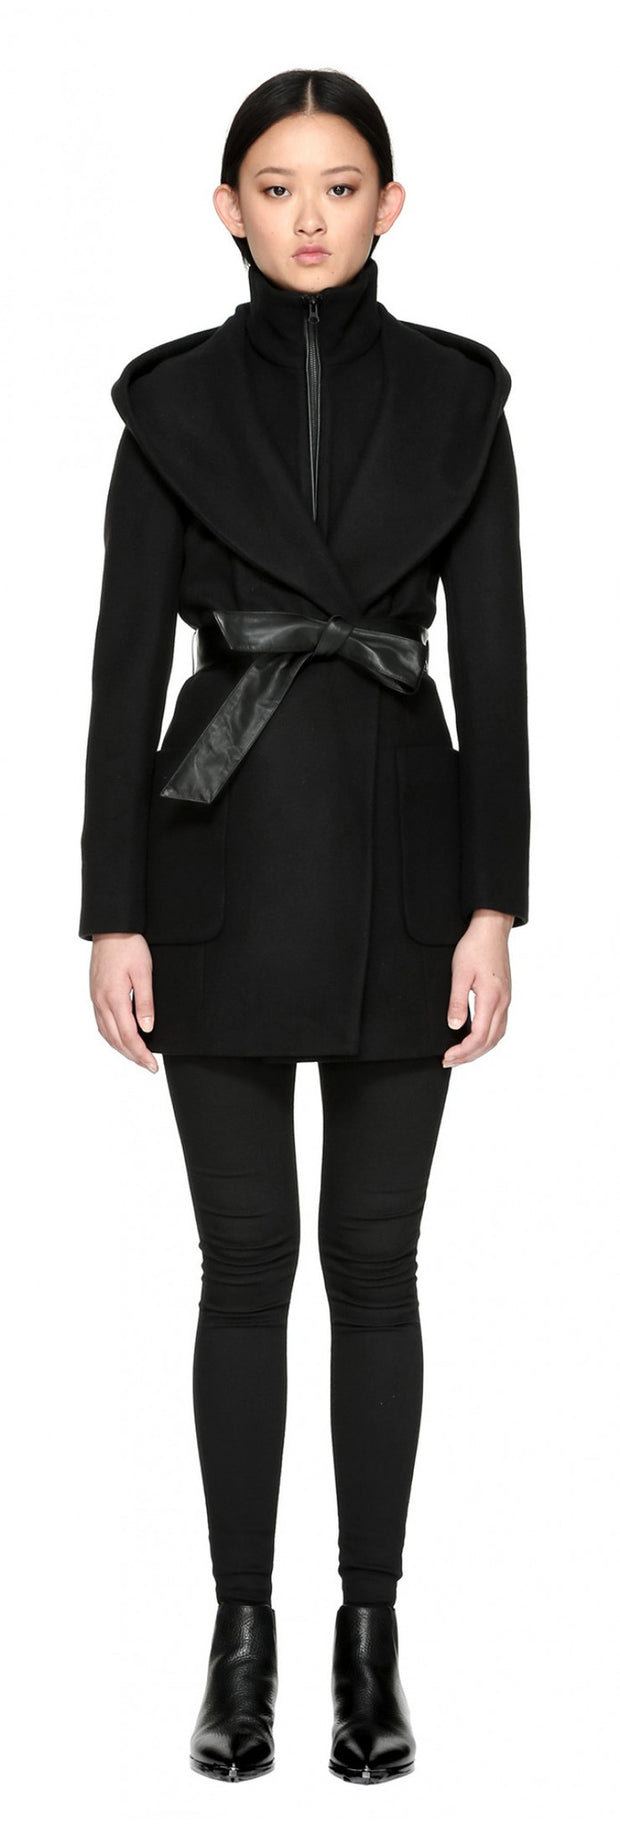 Mackage Siri Hooded Coat w/ belt Black at Blond Genius - 1